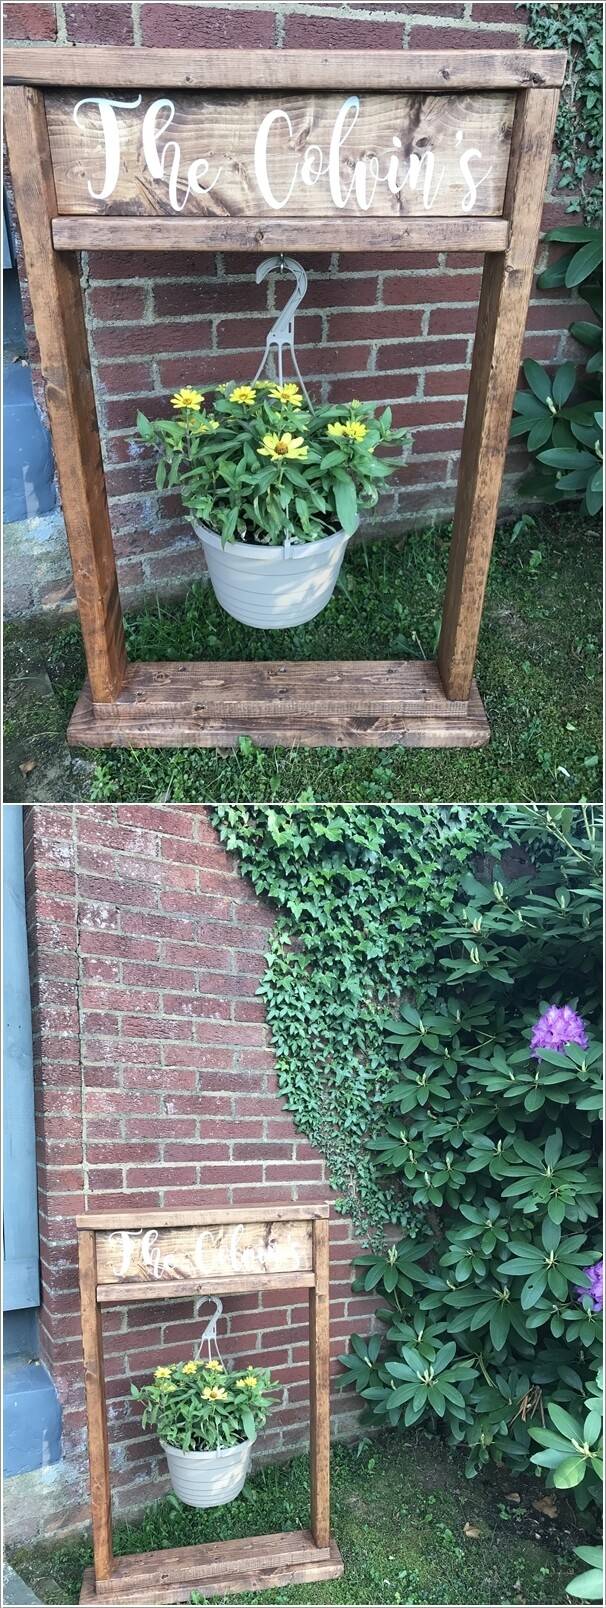 15 DIY Planter Stand Ideas for Your Home on Amazing Plant Stand Ideas  id=57096